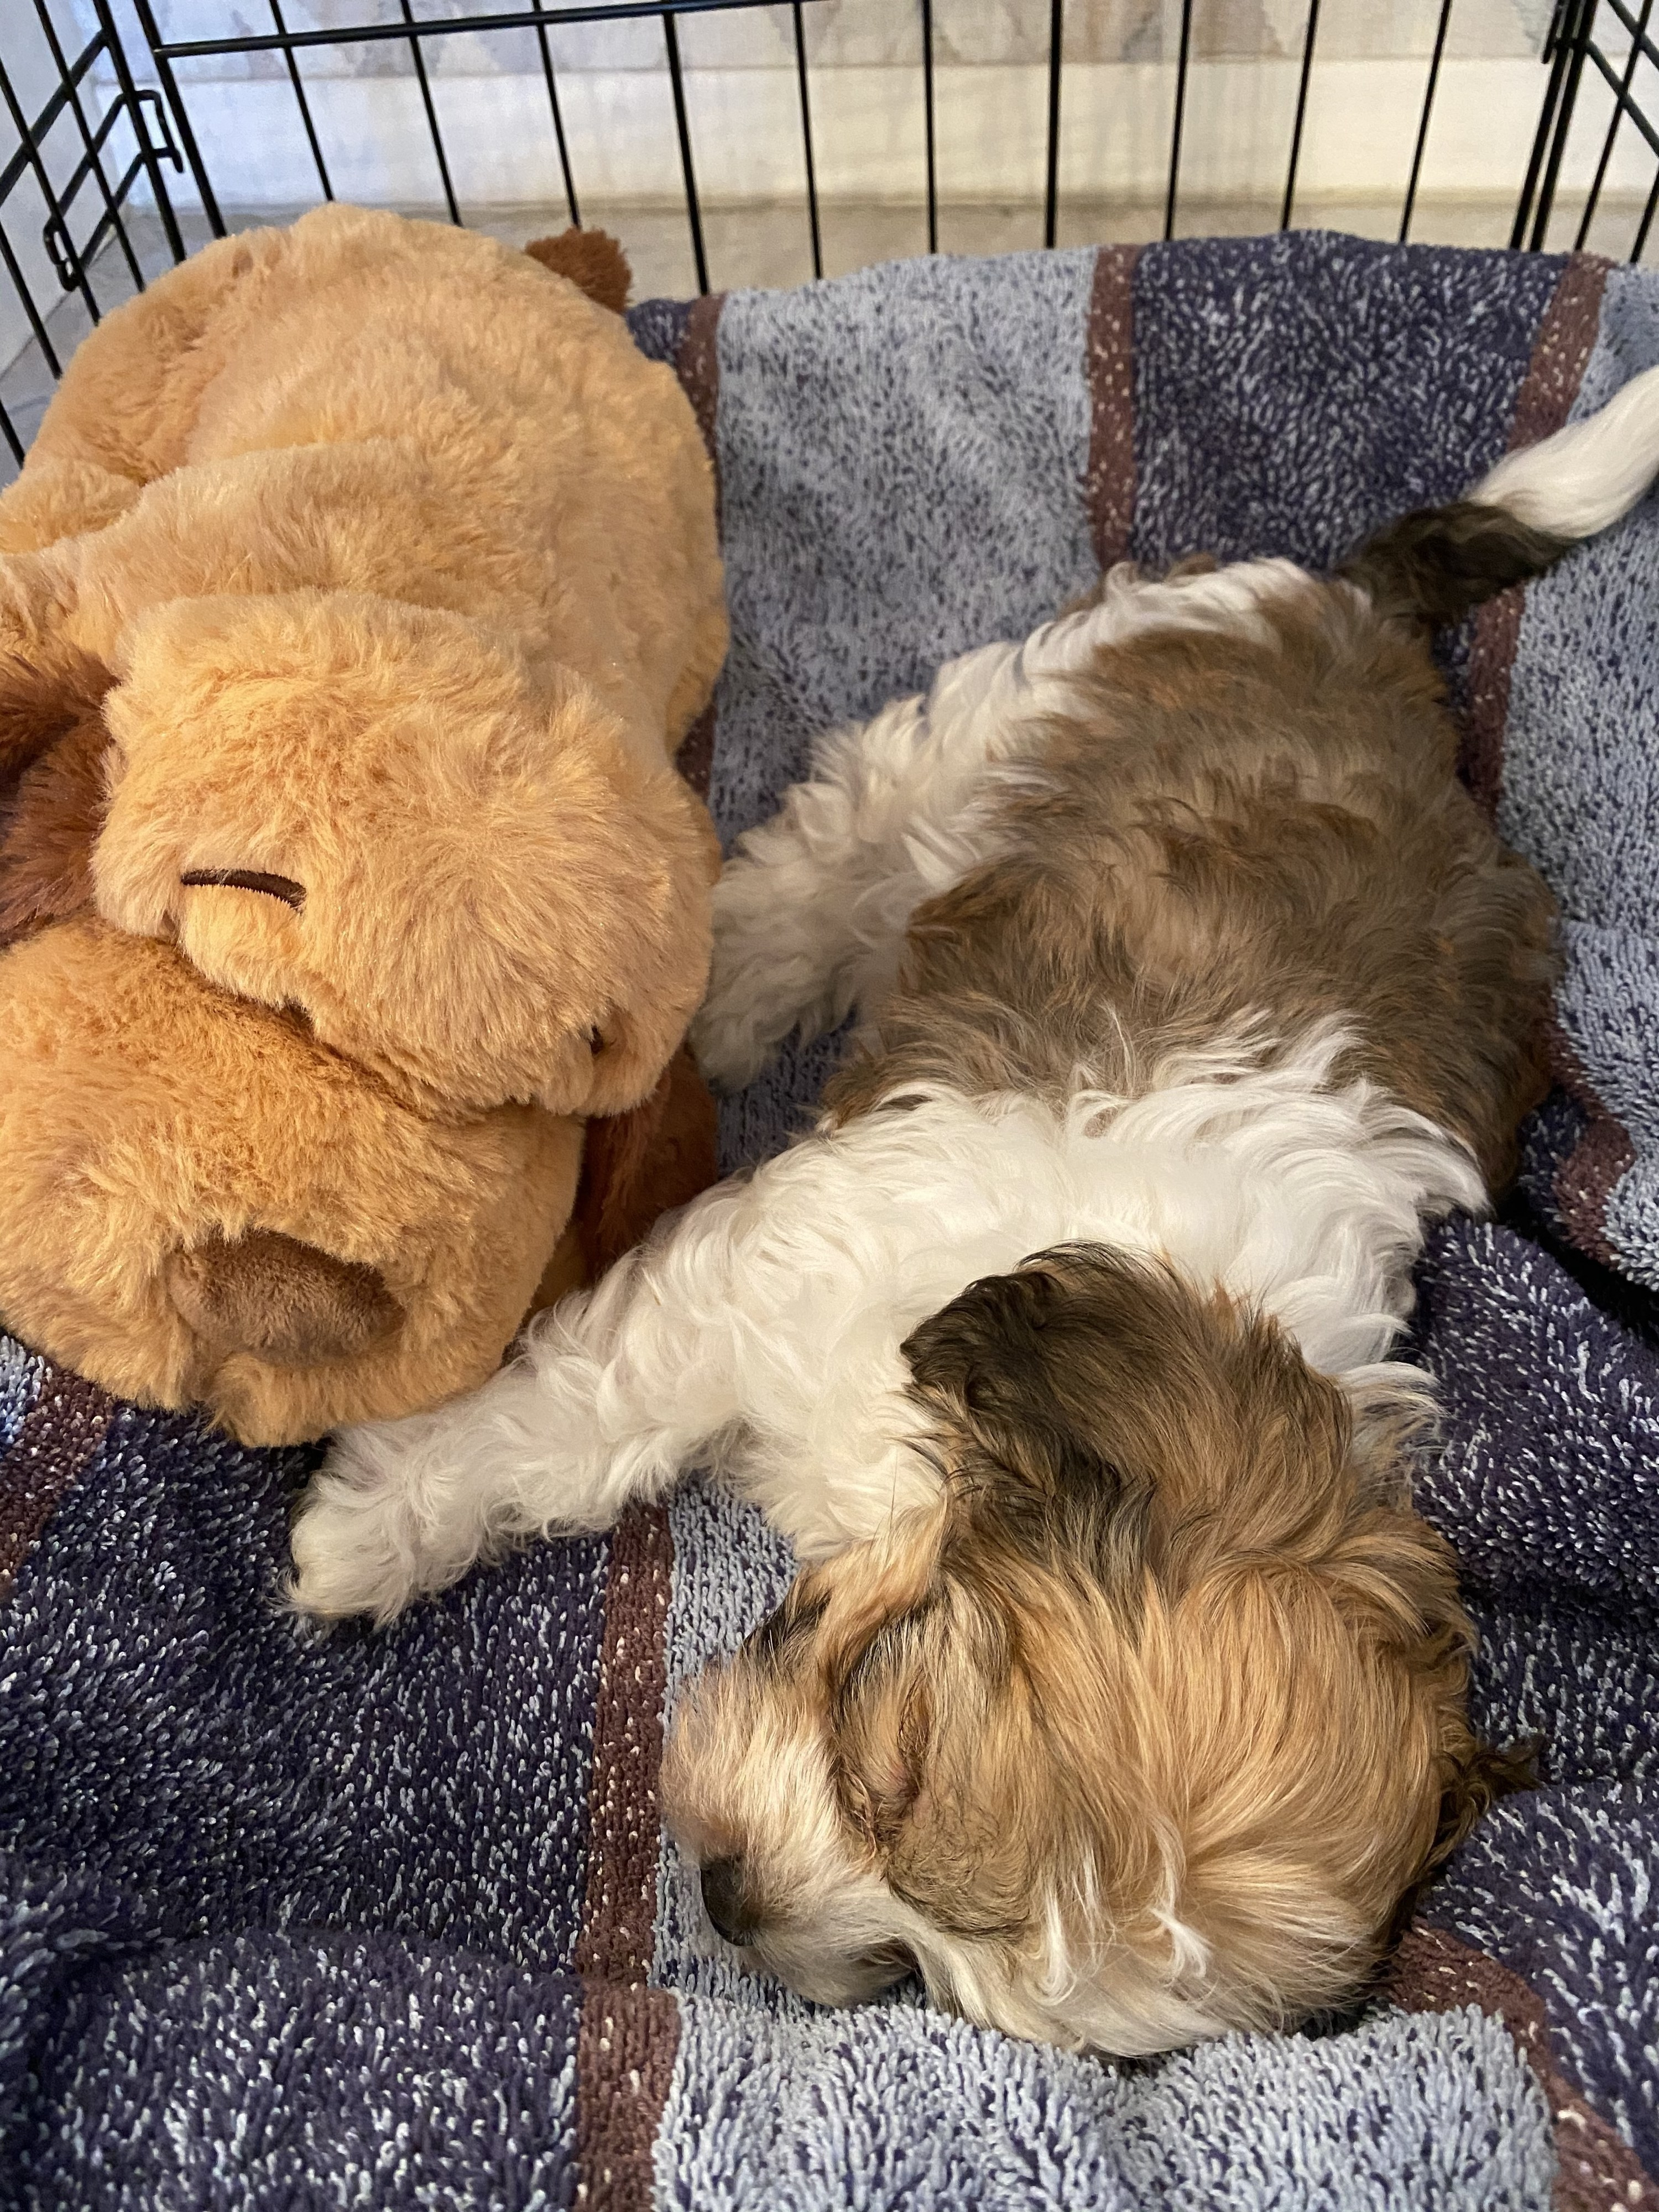 A puppy snuggling with the stuffed Snuggle Puppy